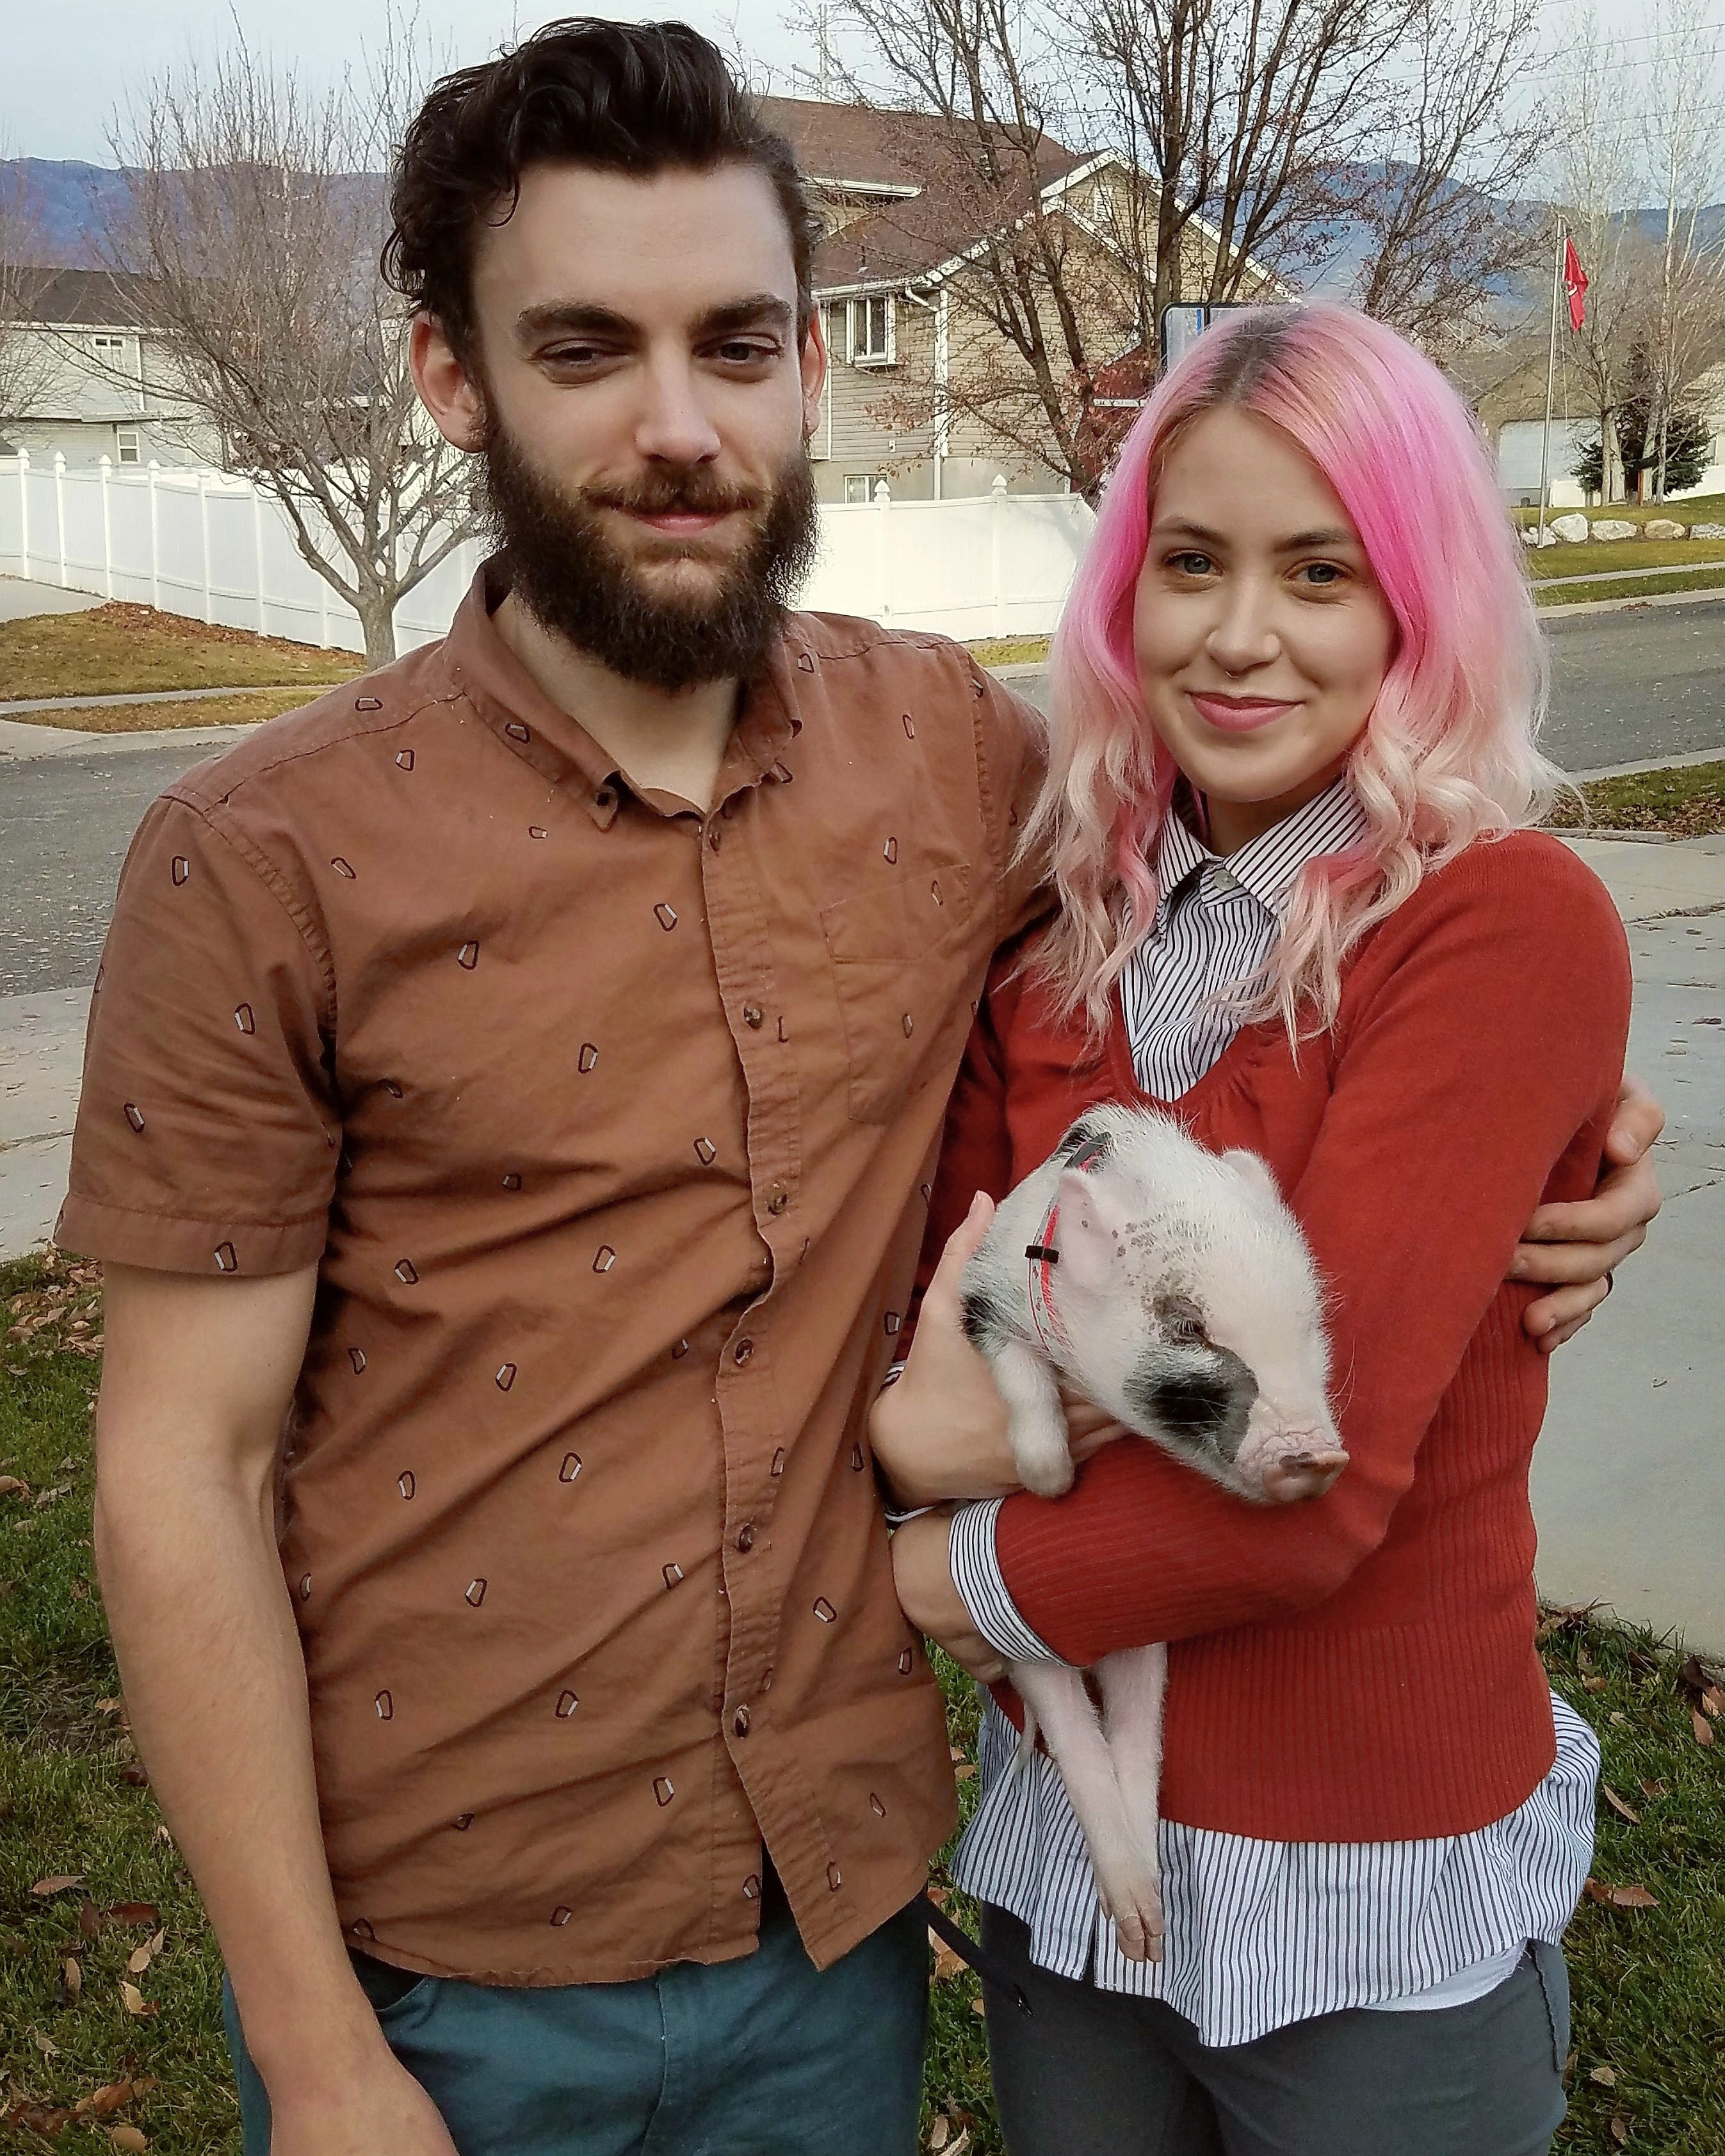 Miranda, her fiance, and their piglet